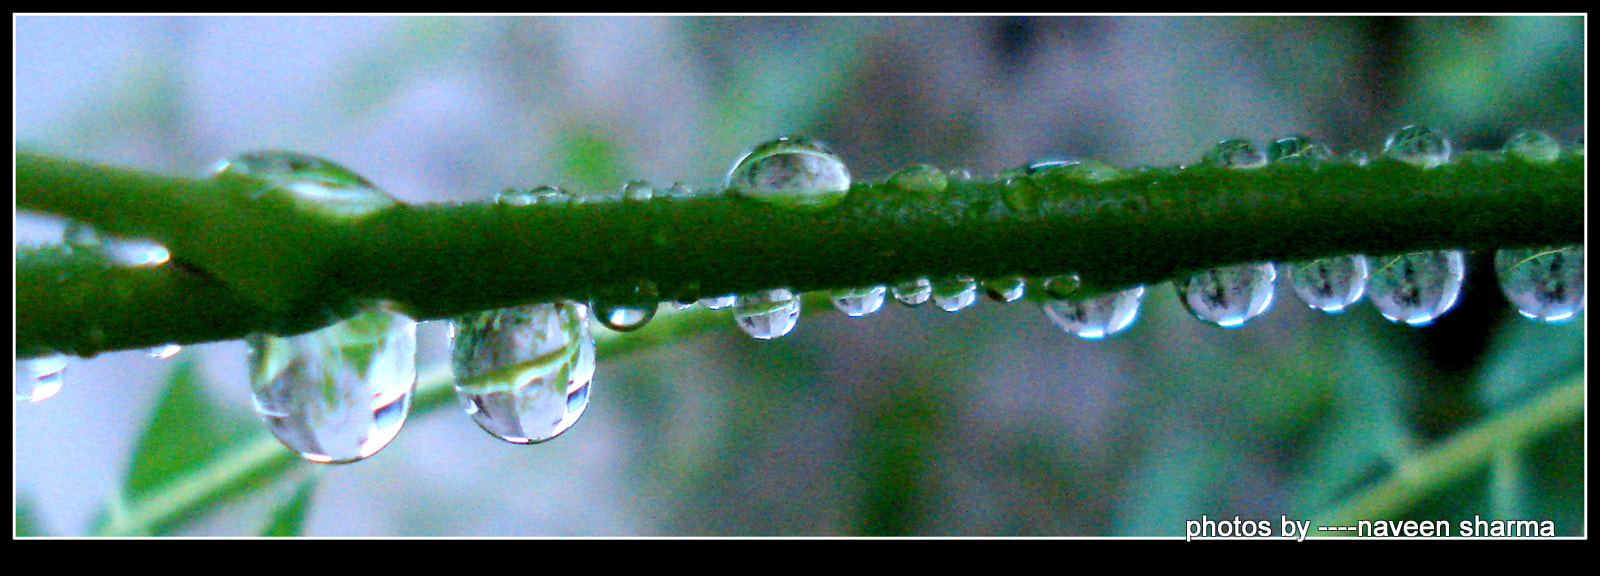 Photograph Rain dews attractions by naveen sharma on 500px